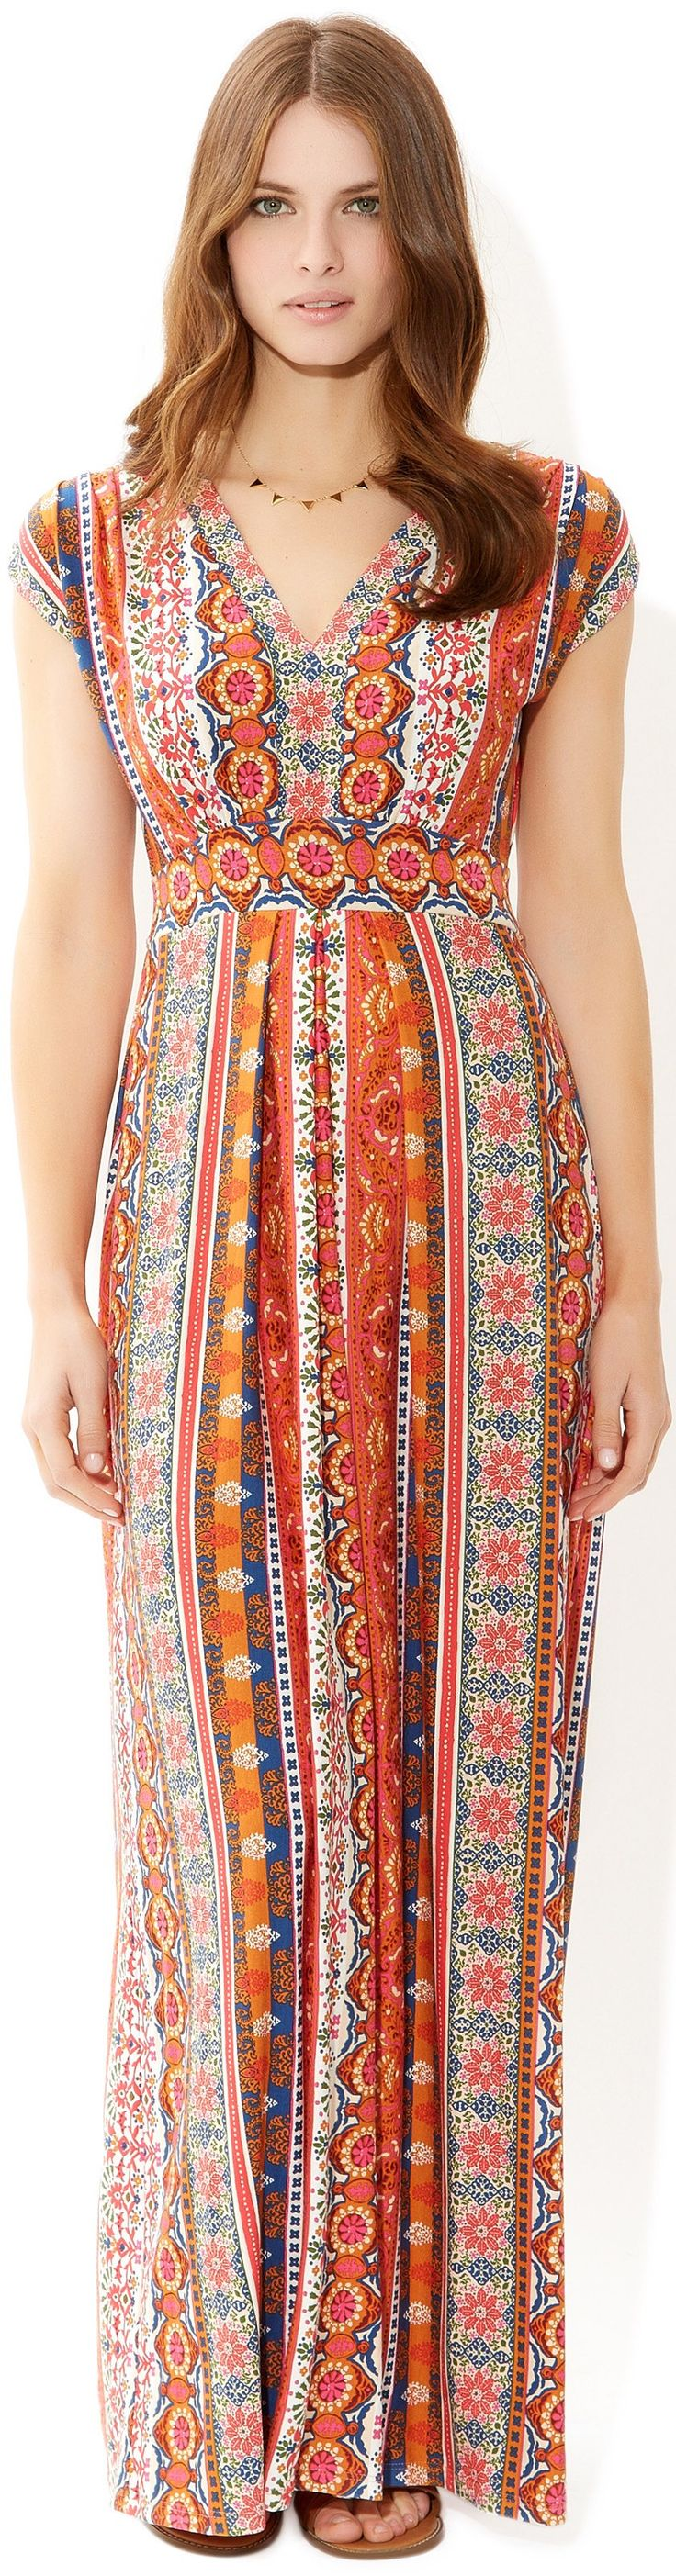 I love the folk print on this travel maxi dress I think it's stretch jersey, cute.   Wear with tan boots and cardi in fall, flipflops for Hawaii on the beach... just love the colors. ANYWAY... Read UPDATED ARTICLE: http://www.boomerinas.com/2014/03/28/what-i-wear-when-i-travel-to-europe-stretch-jersey/